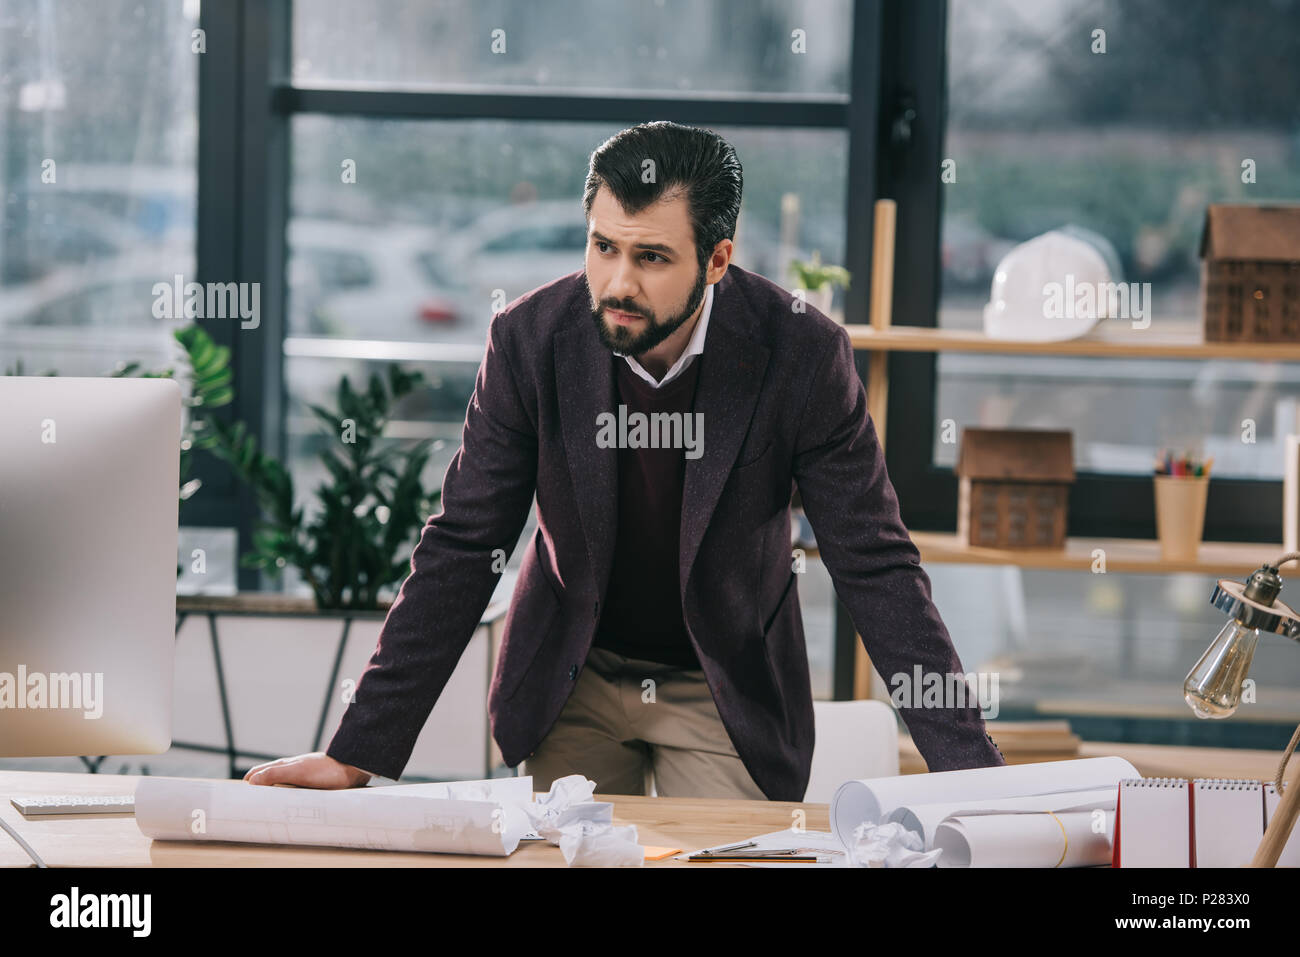 thoughtful male architect at workspace with blueprints and crumpled papers - Stock Image